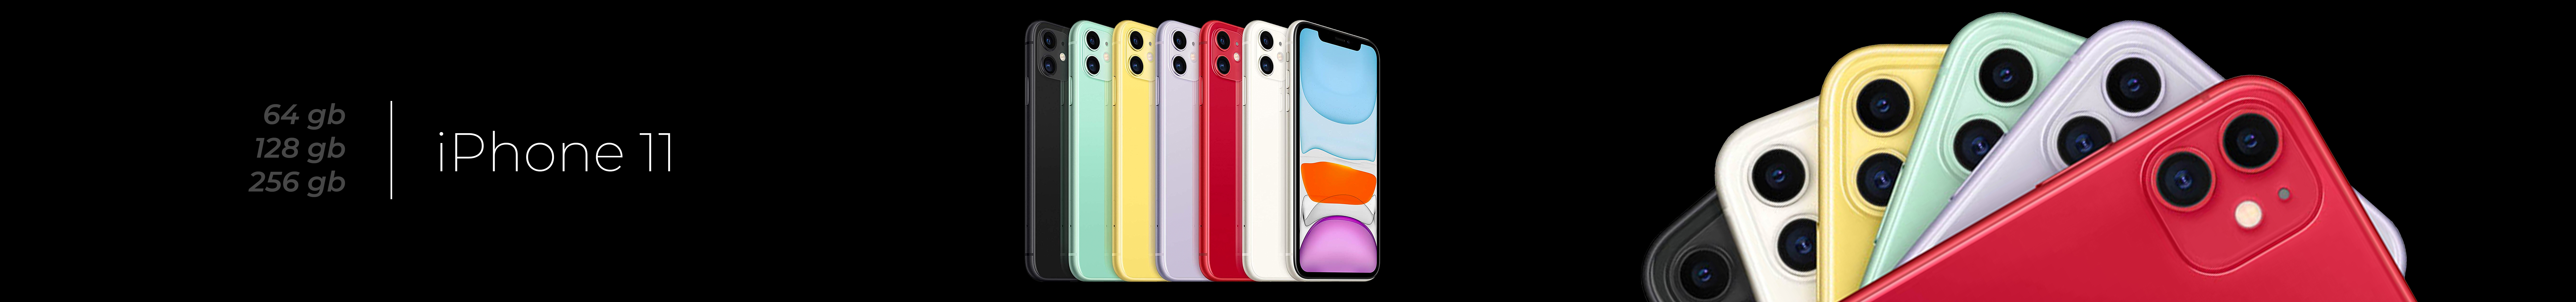 iPhone 11 Open Box Mobile